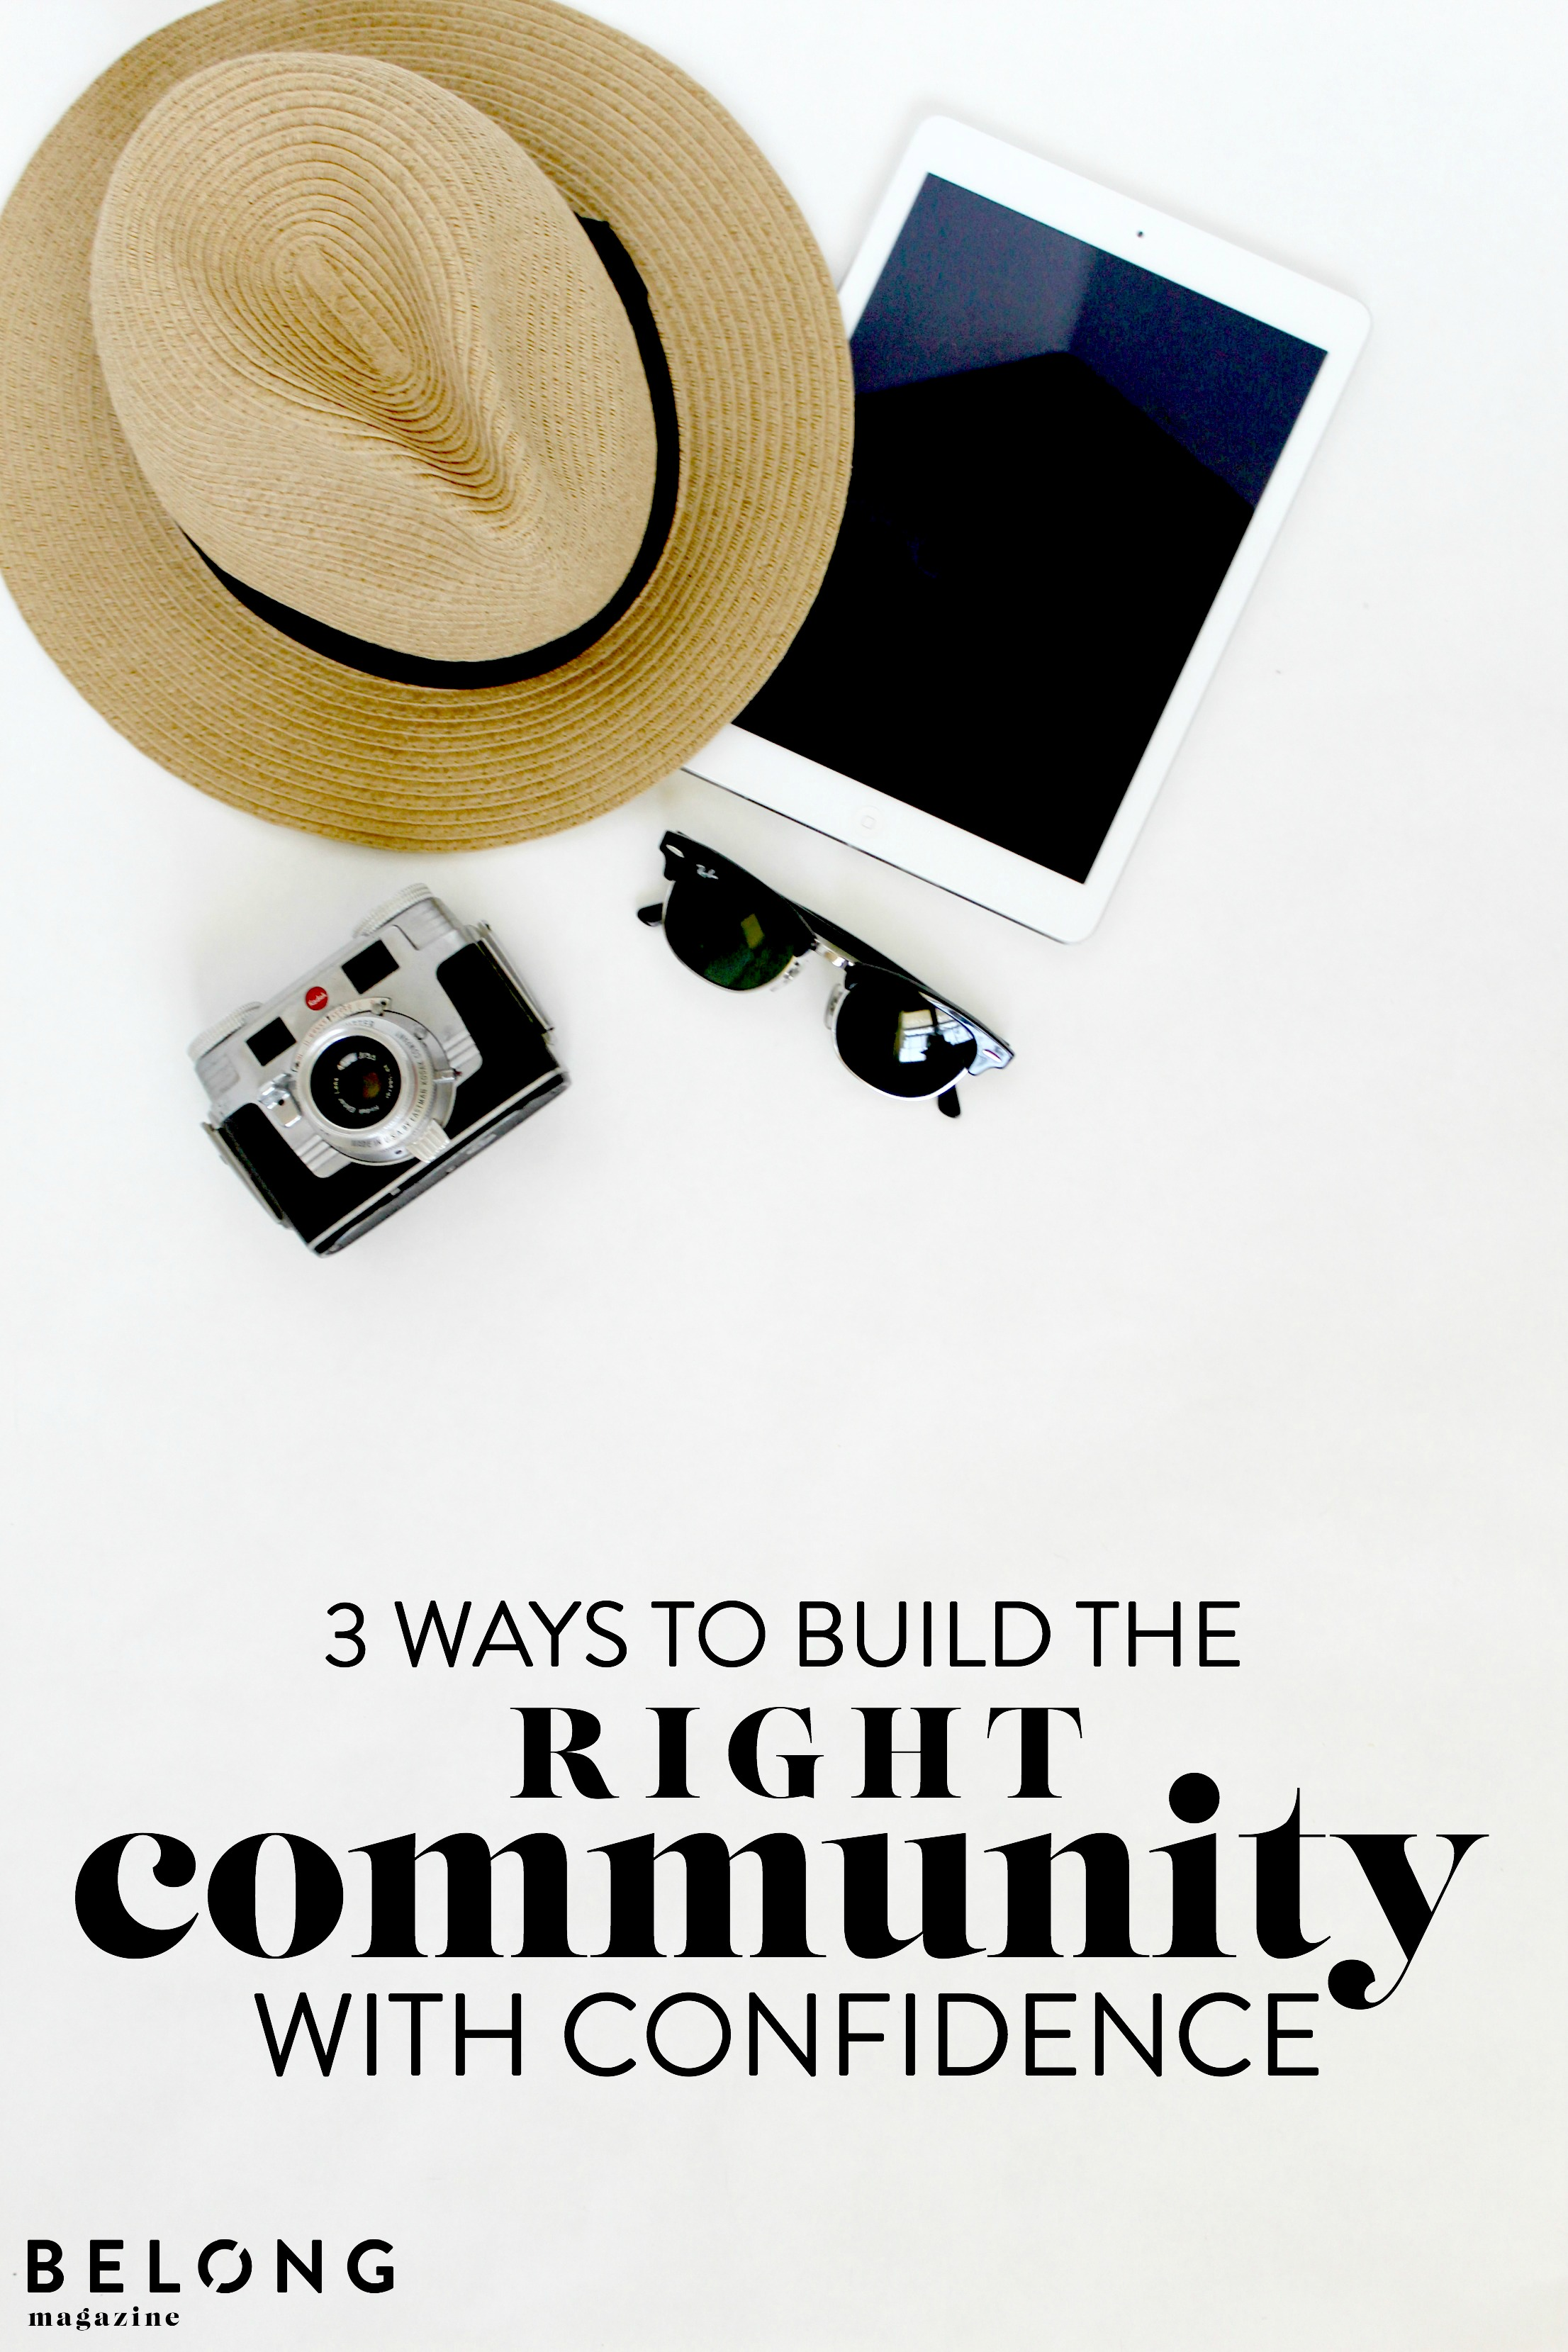 3 ways to build the right community with confidence - belong magazine blog - female entrepreneur, lady boss,